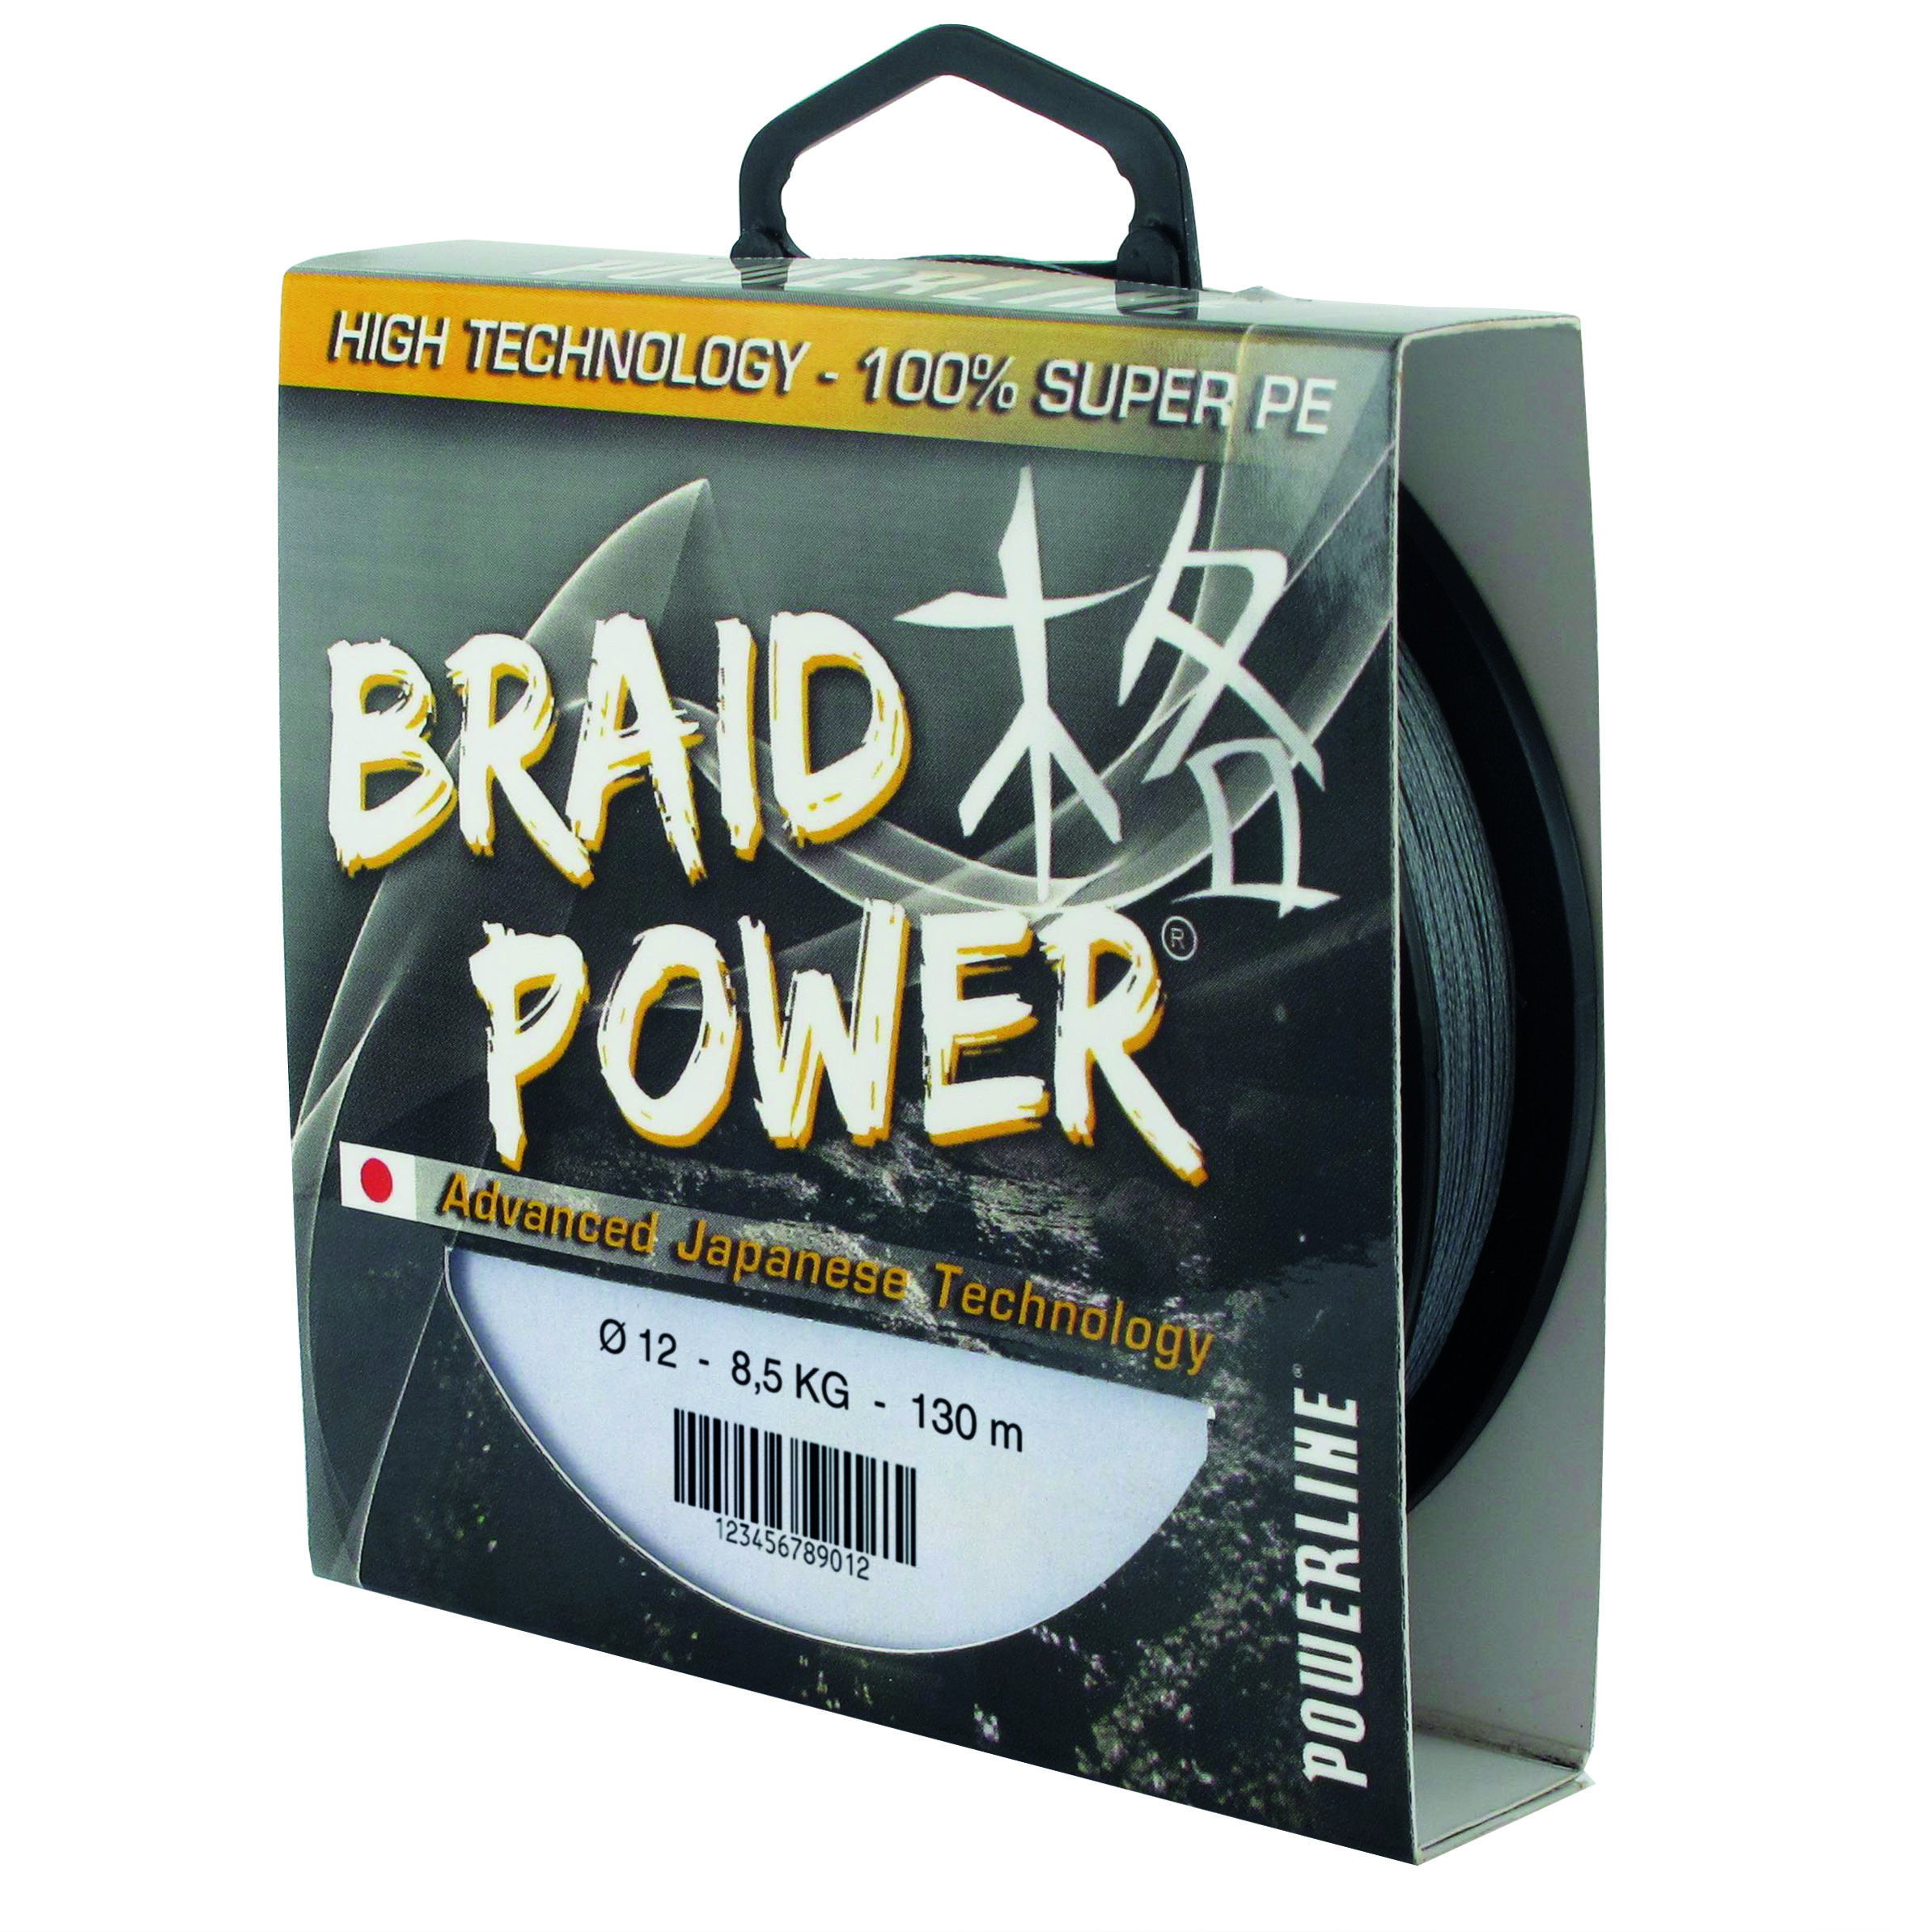 TRESSE BRAID POWER 250 M DE POWERLINE VERTE